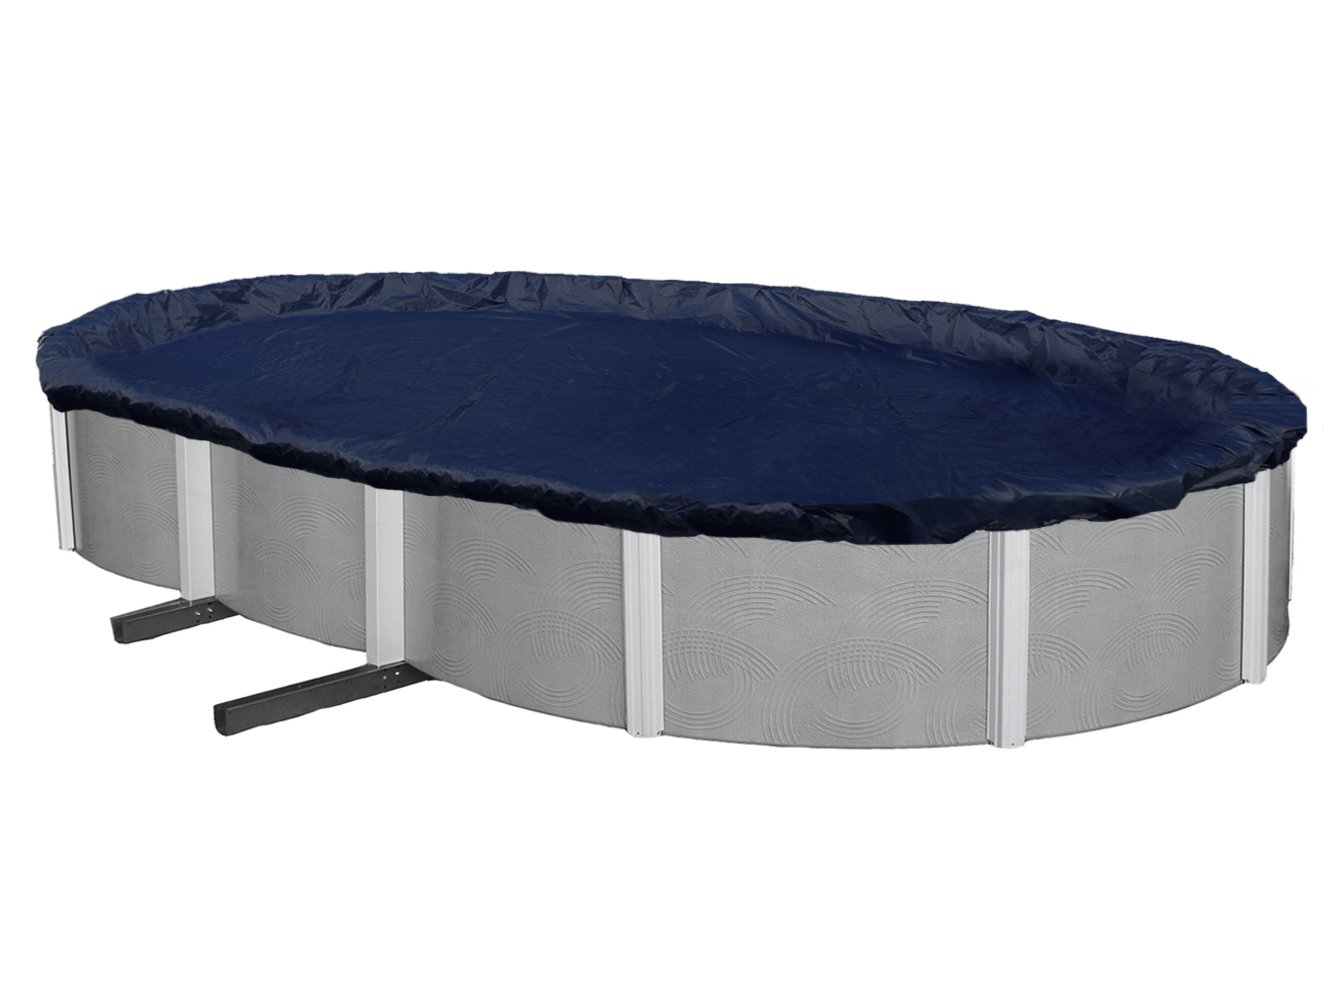 Blue Wave Bronze 8-Year 21-ft x 41-ft Oval Above Ground Pool Winter Cover